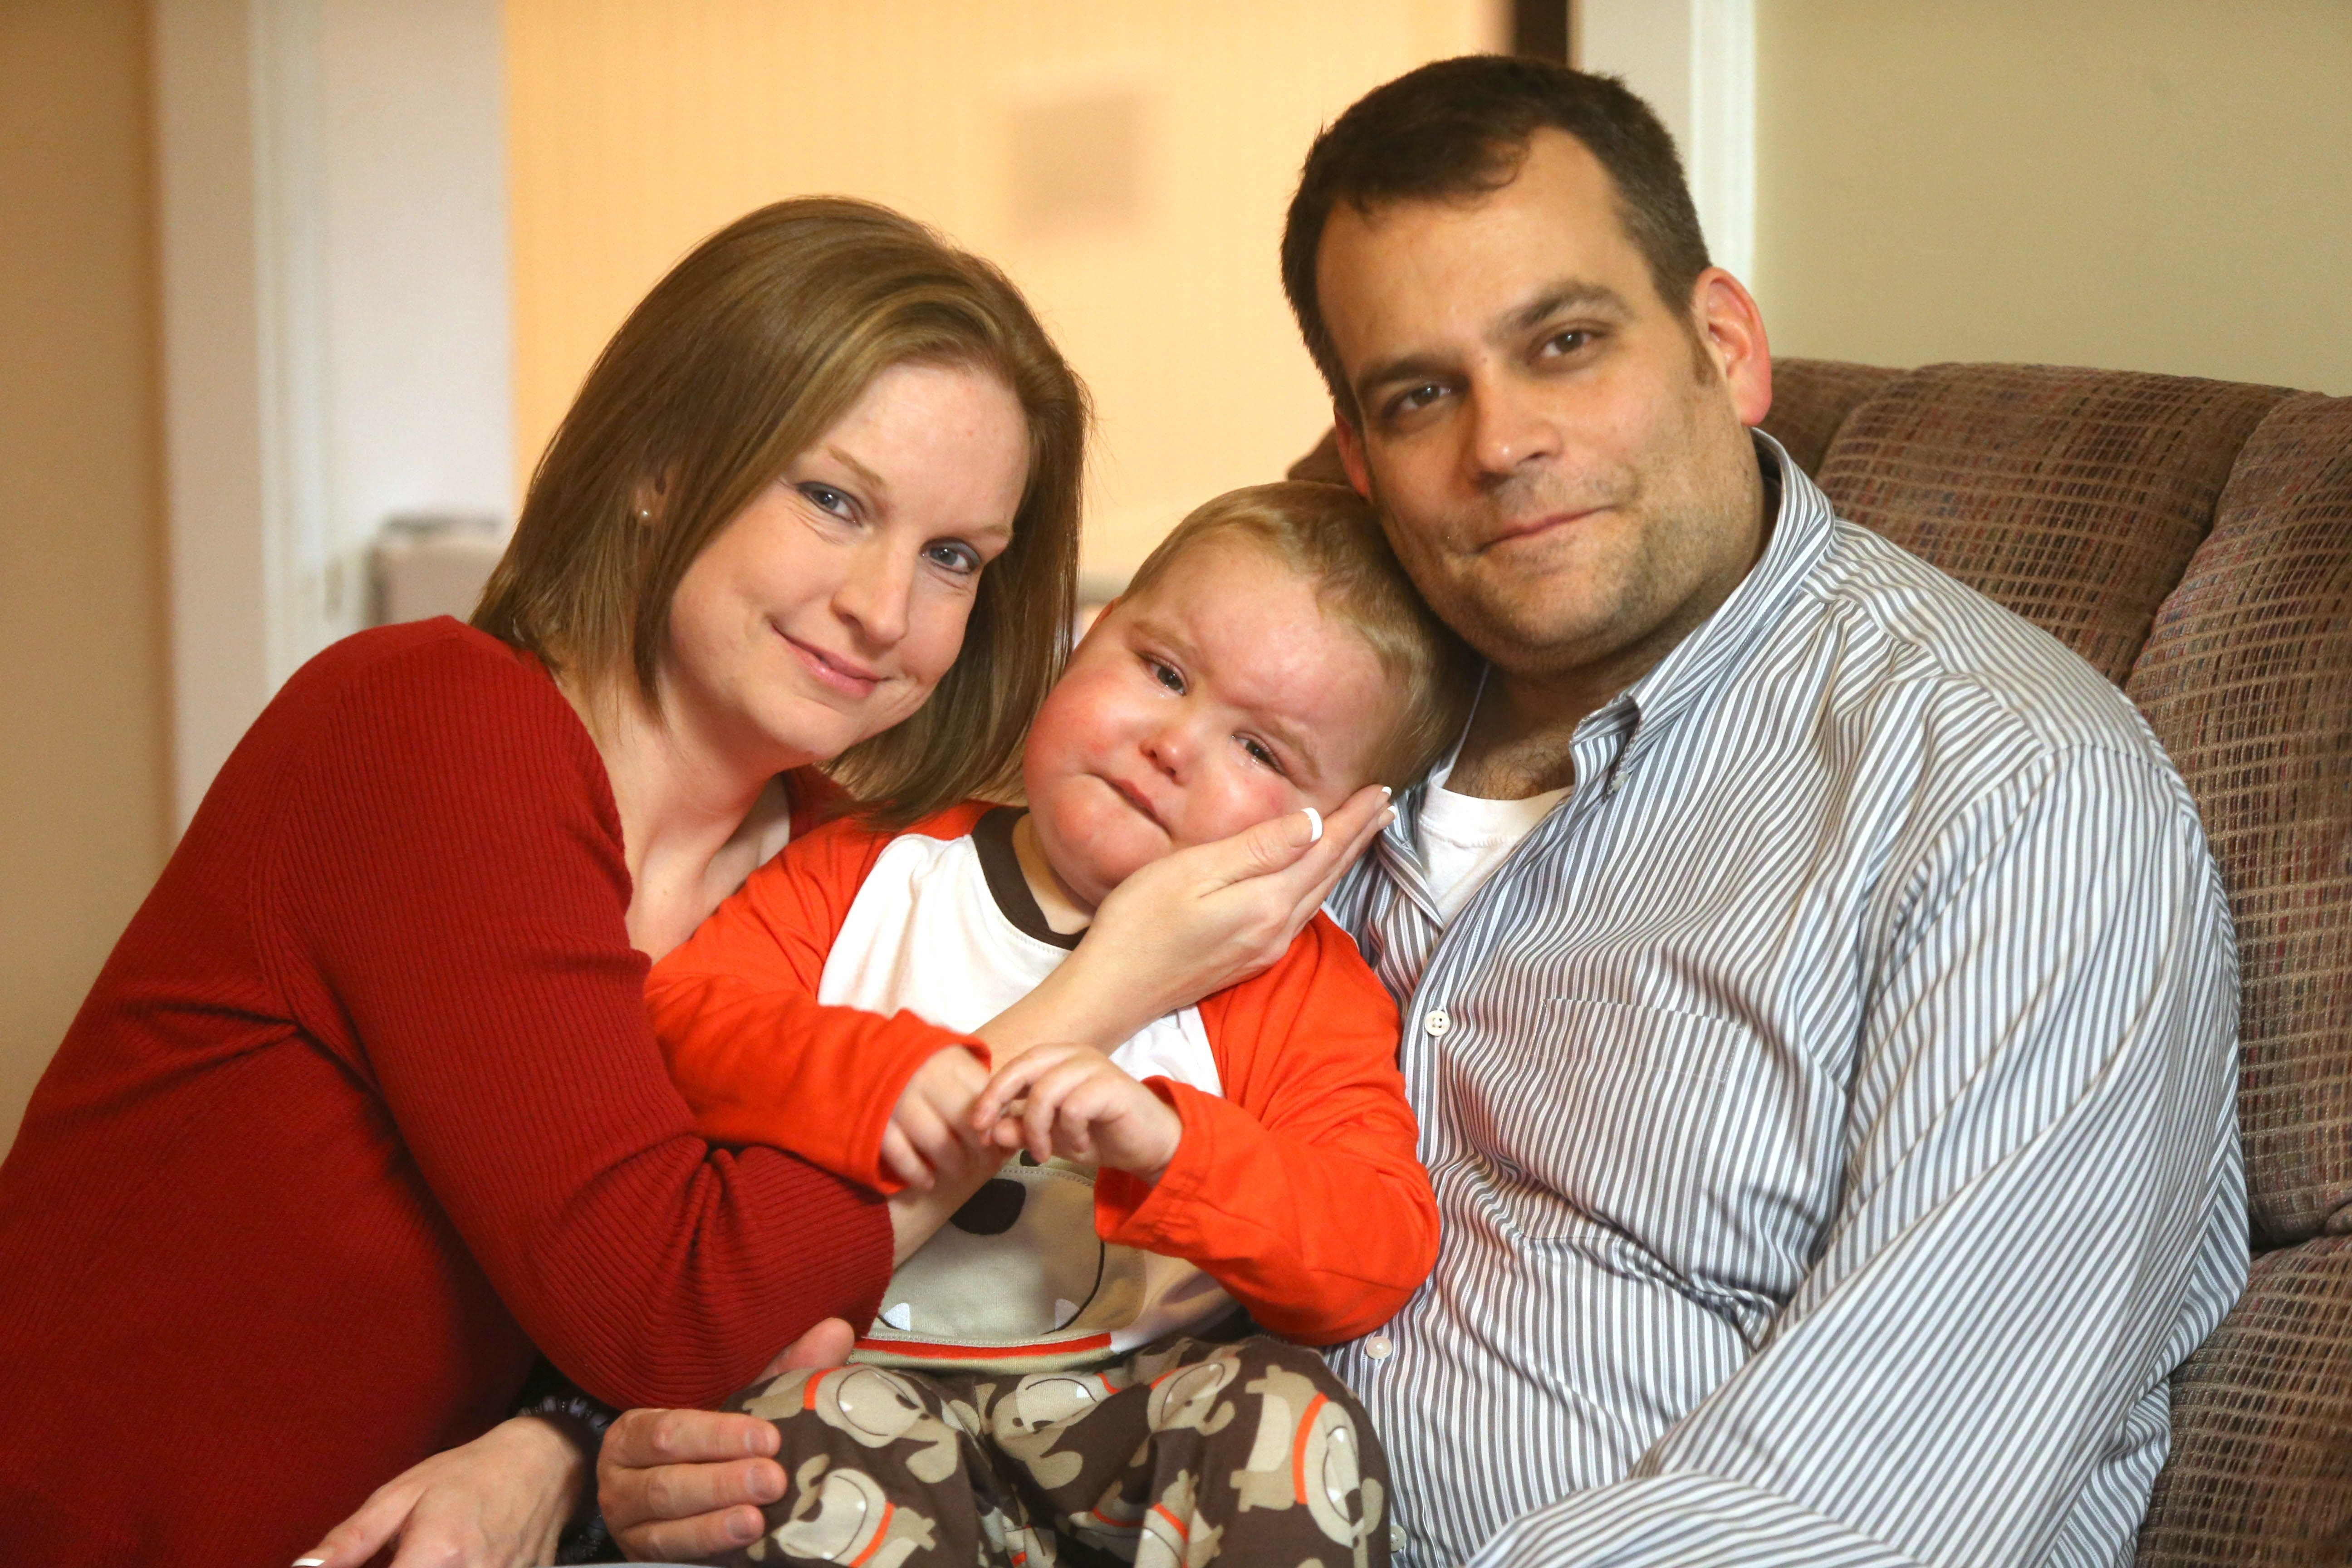 Dawn and Chad Millen hold their son, John, 3, in their Orchard Park home Friday. Since discovering John has an inoperable brain-stem tumor, the family has tried to live in the moment, enjoying the time they have left with the boy.